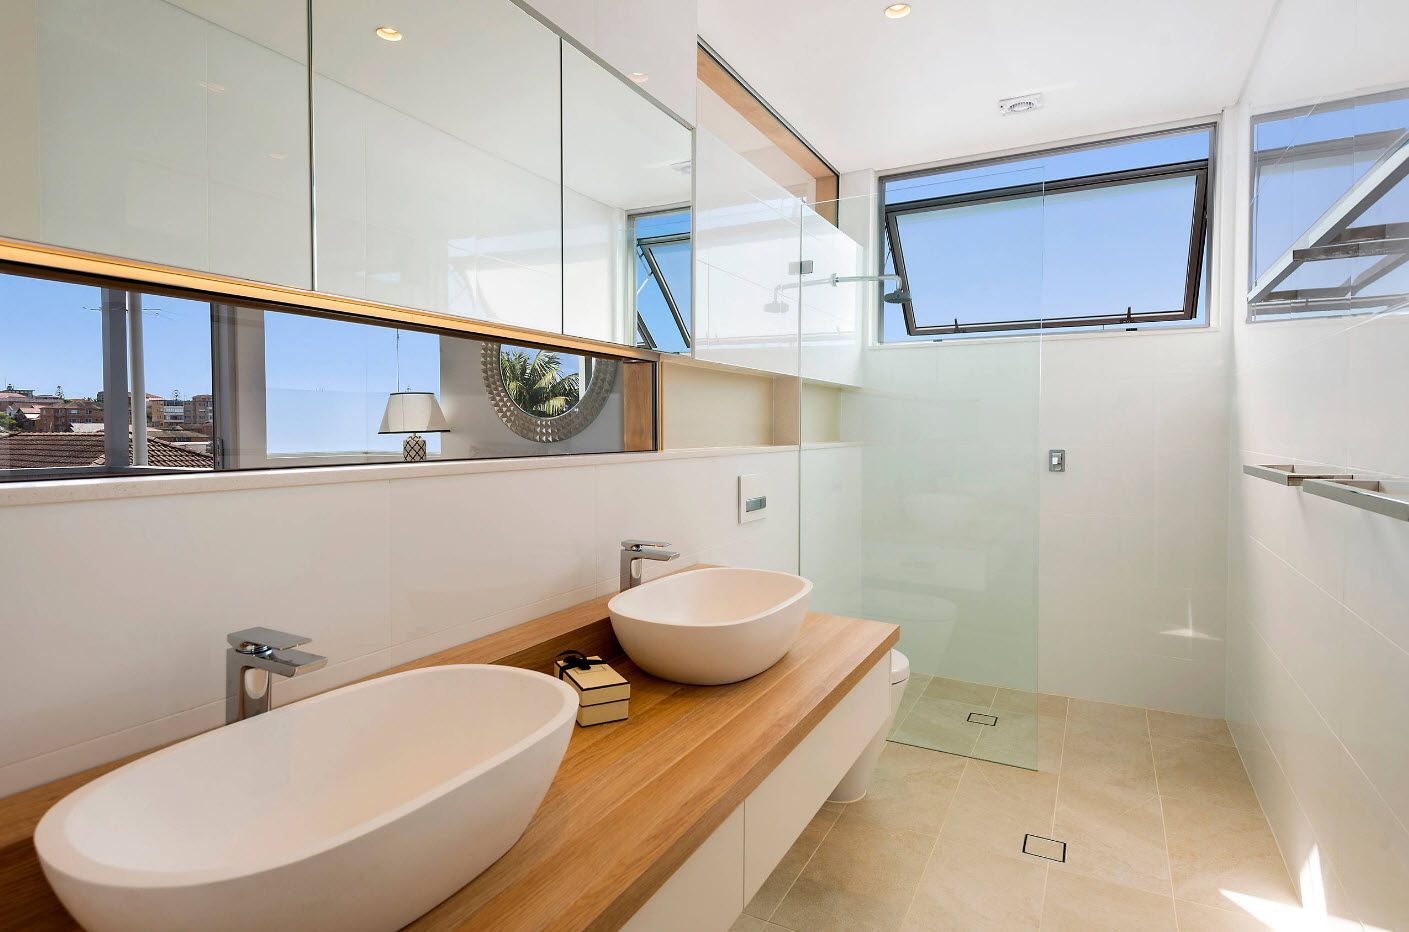 White bathroom finish and mirror surfaces